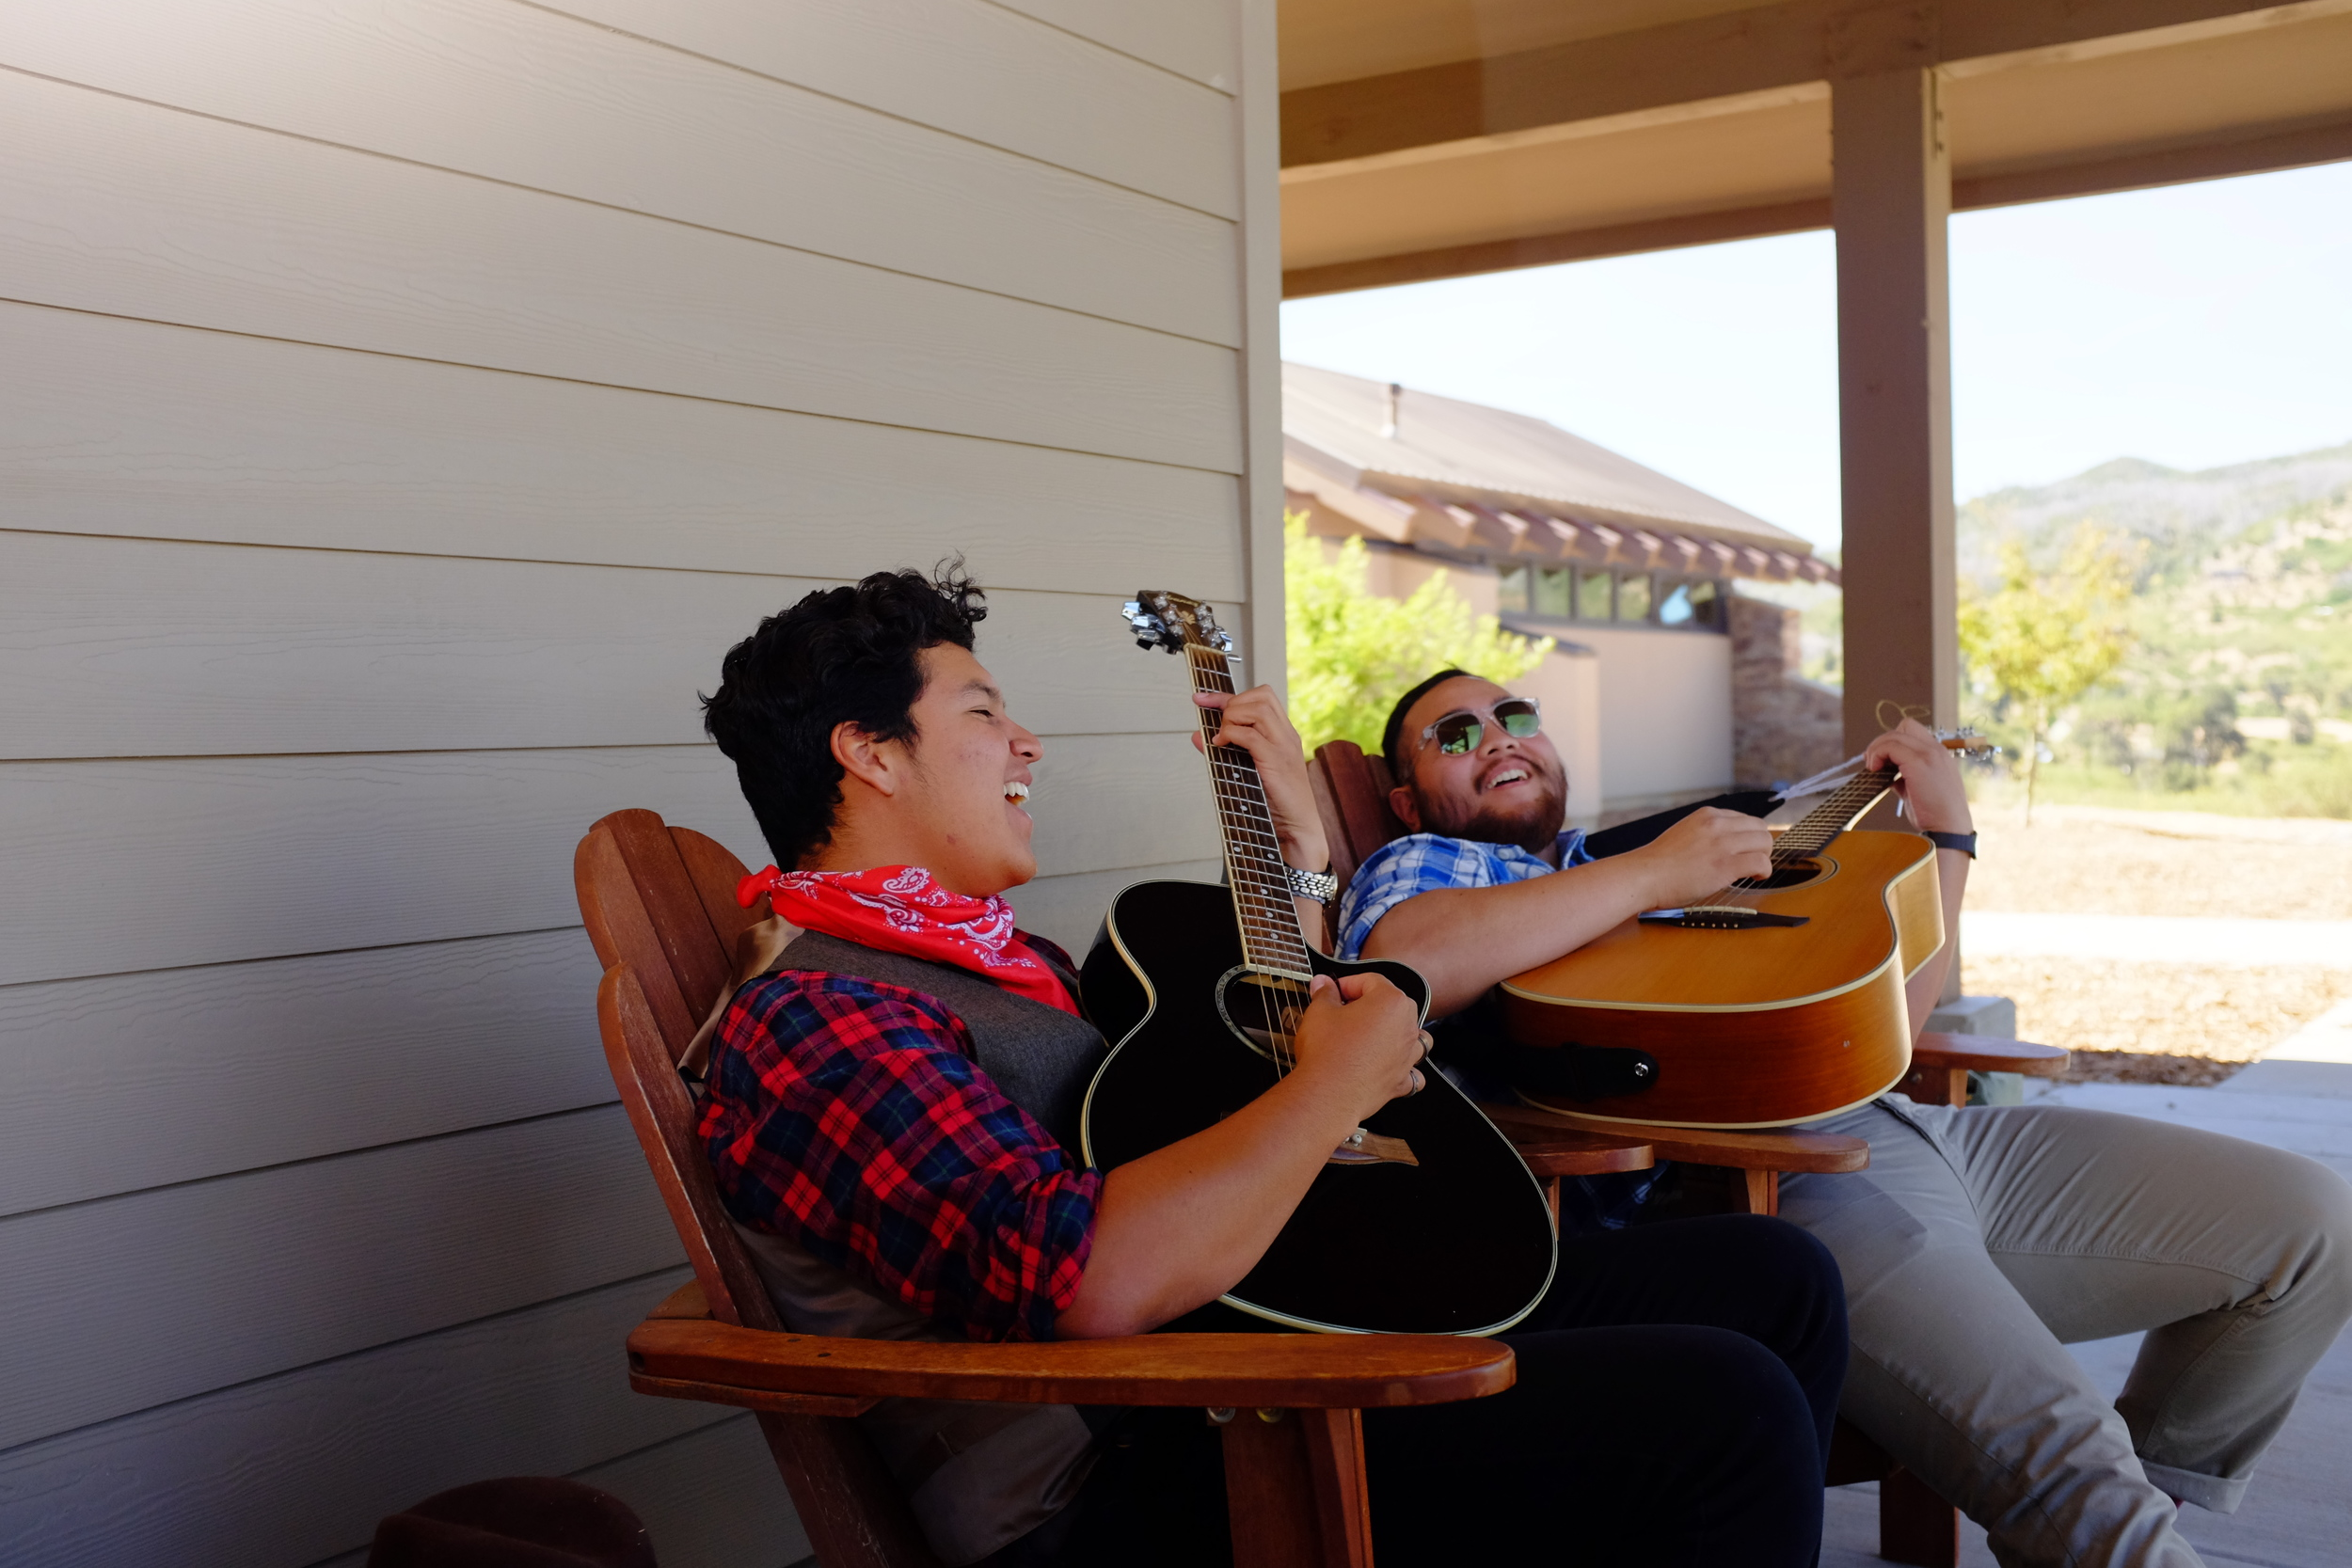 Musicians Angel and Matthew relax on the patio and play some music